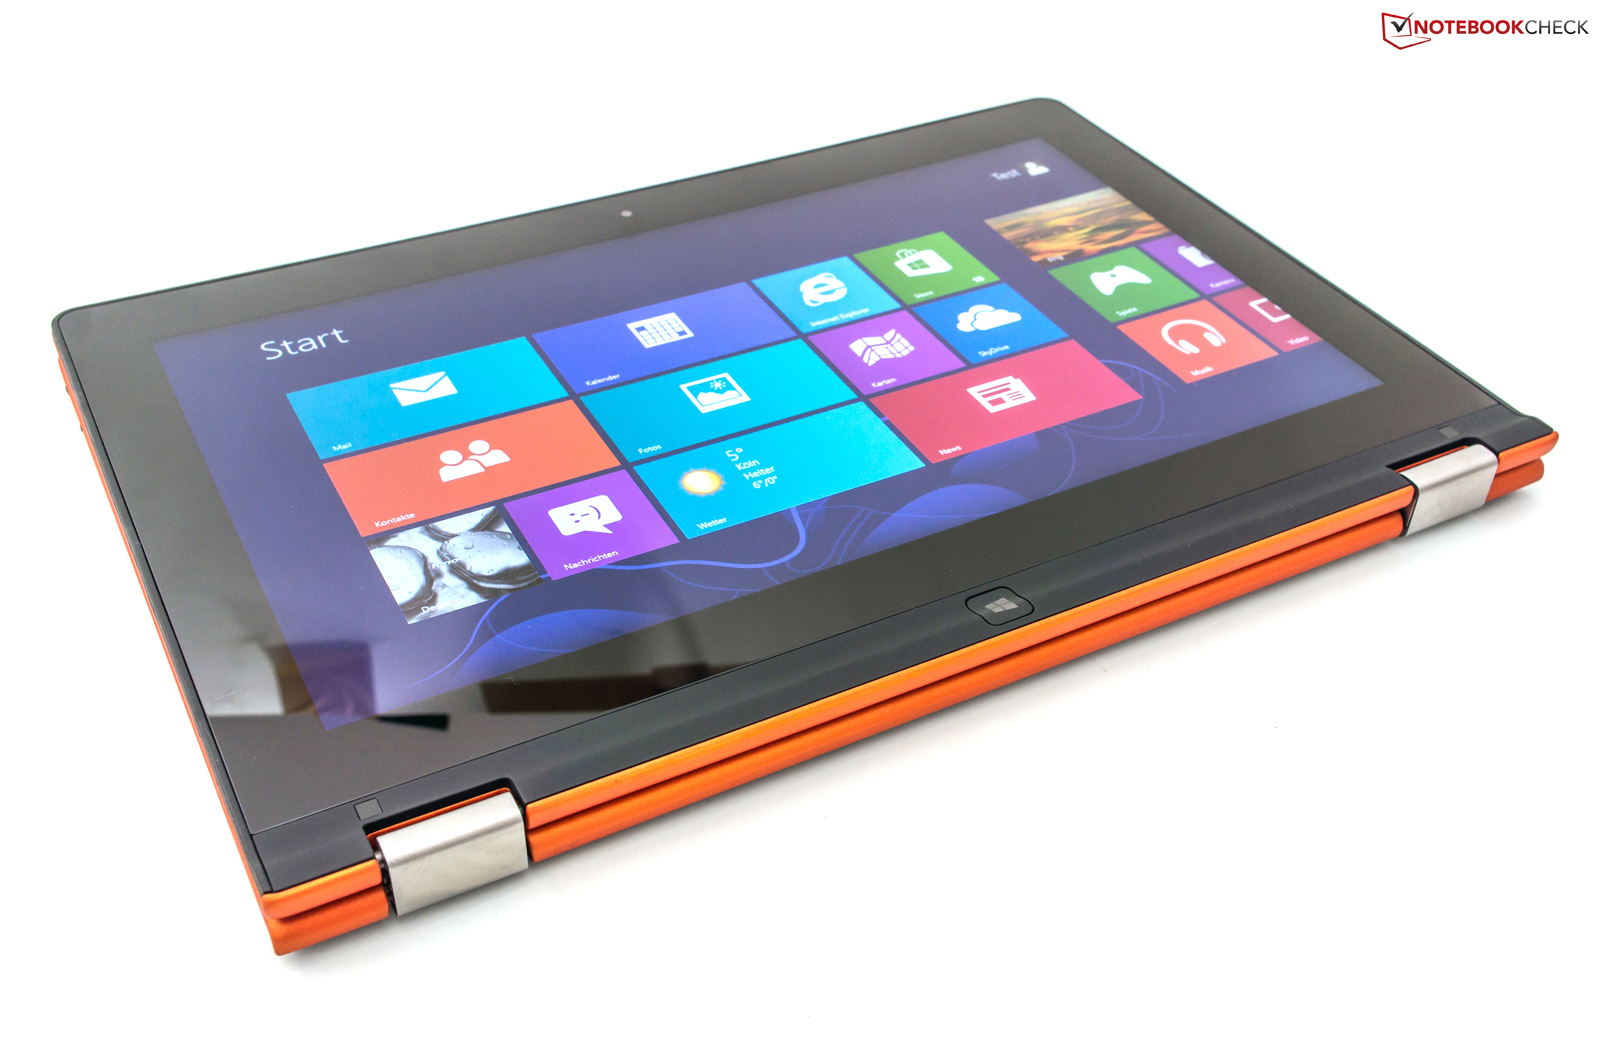 Lenovo ideapad yoga 11 convertible ultrabook